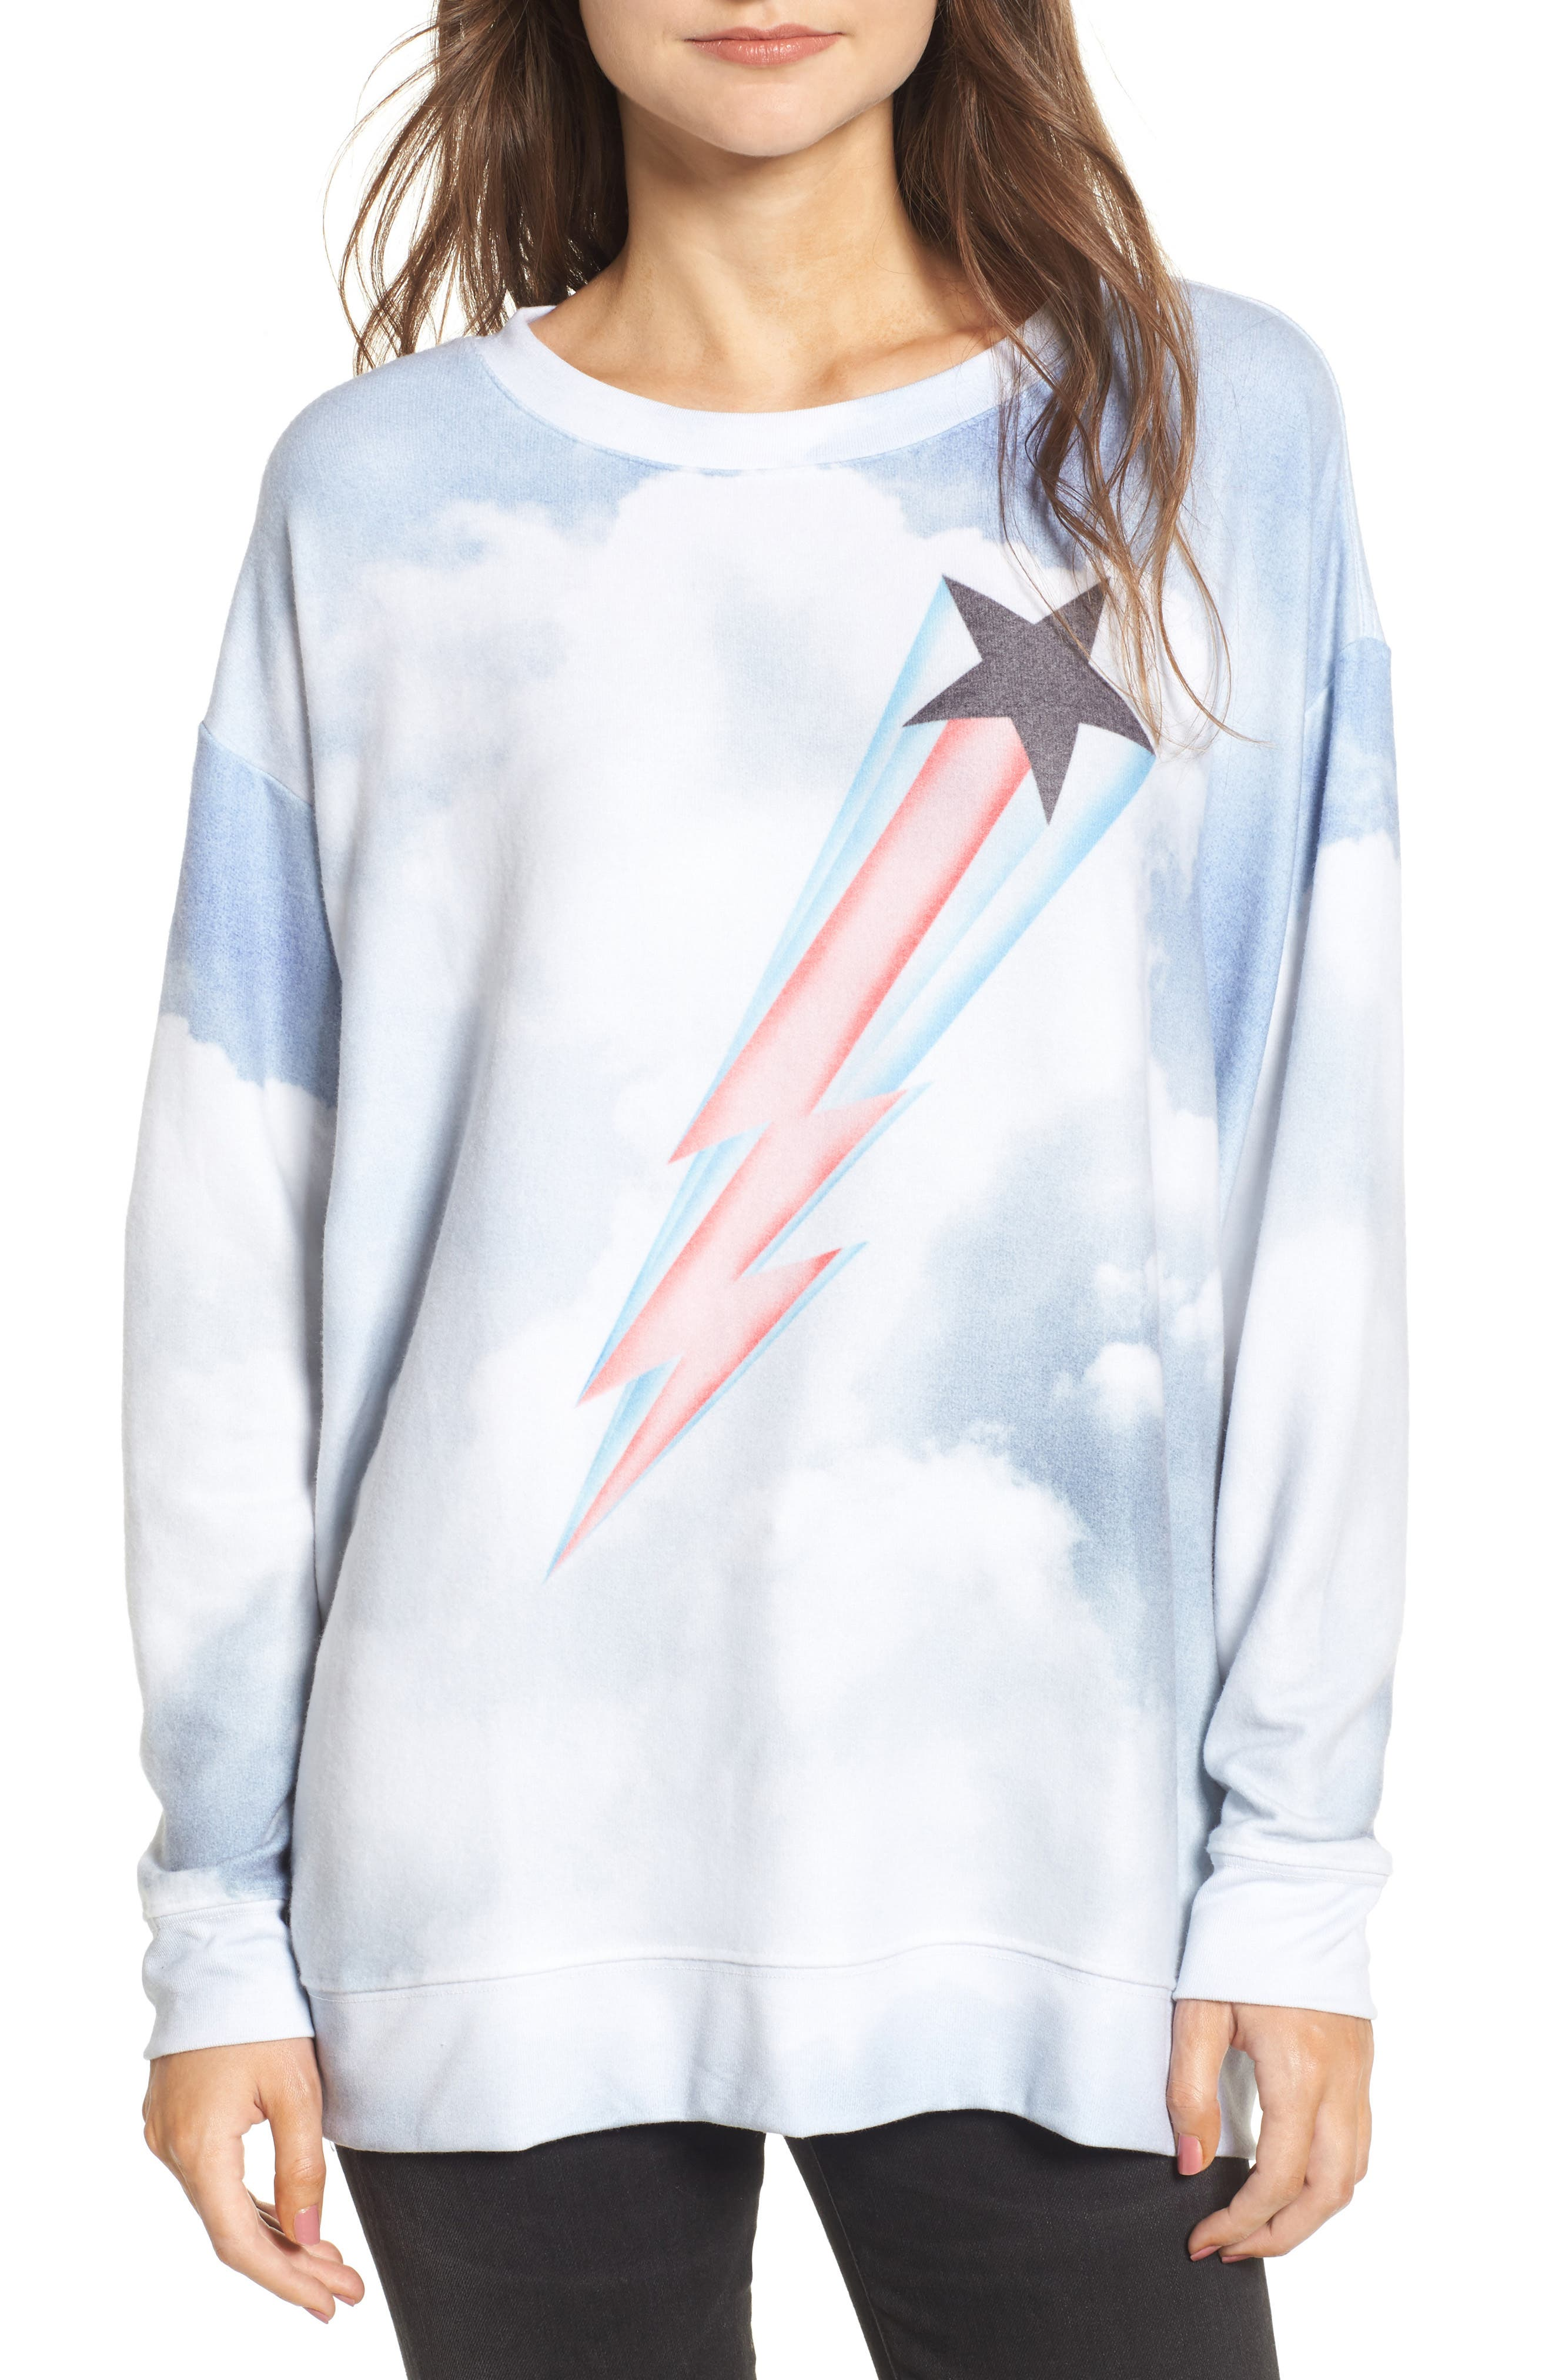 Heavens Roadtrip Sweatshirt,                             Main thumbnail 1, color,                             660